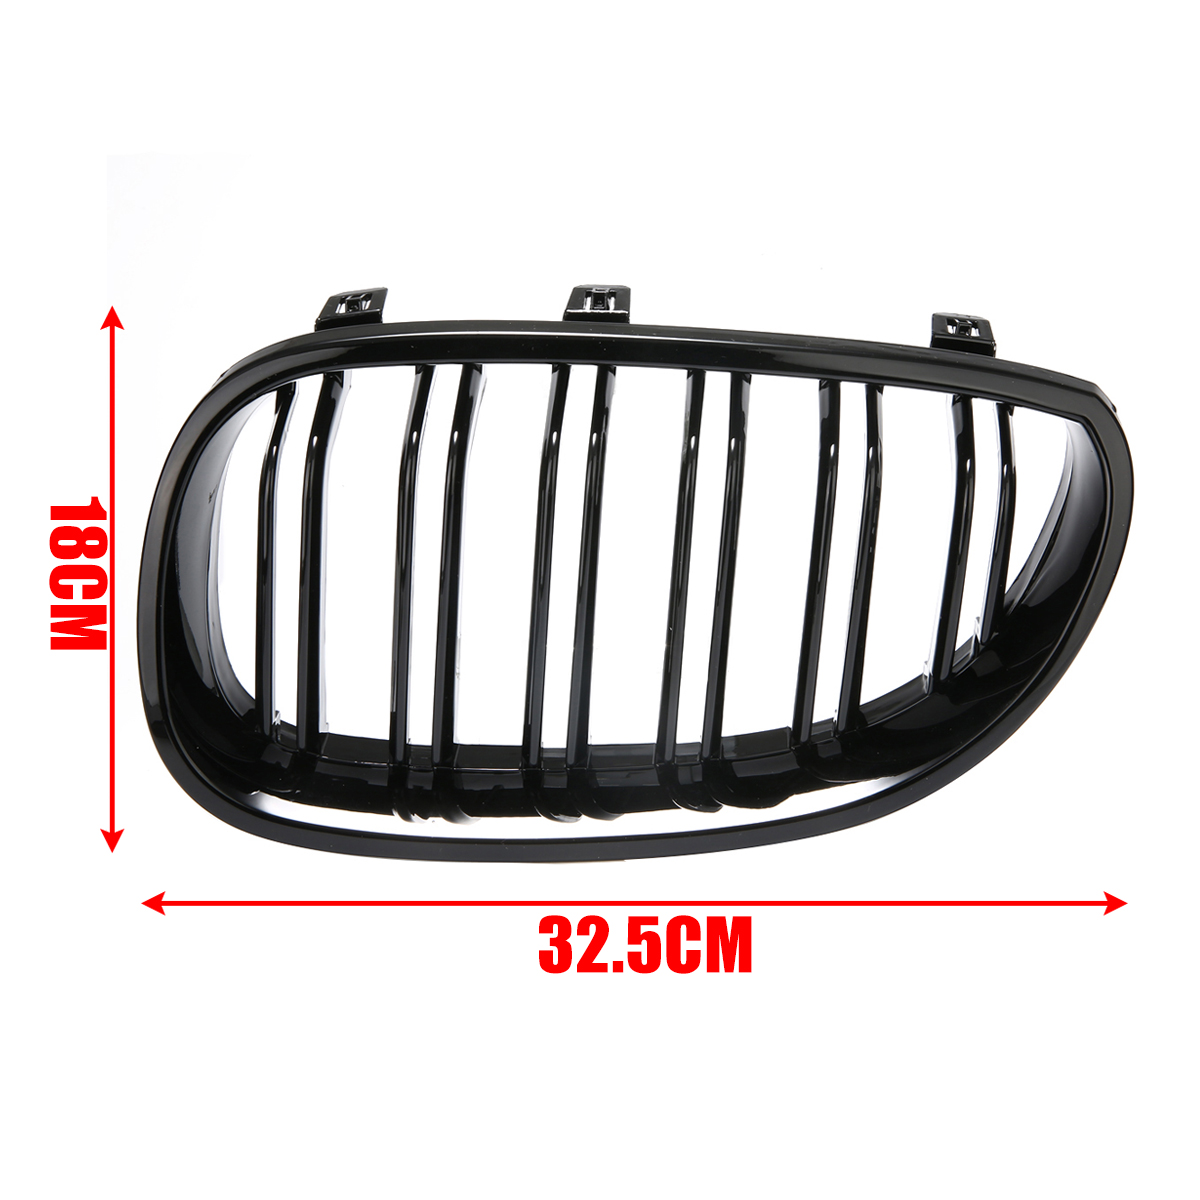 1Pair Gloss Black Car Front Sport Grill Kidney Grilles Grill For BMW 5 Series M5 E60/E61 2003 2004 2005 2006 2007 2008 2009 2010